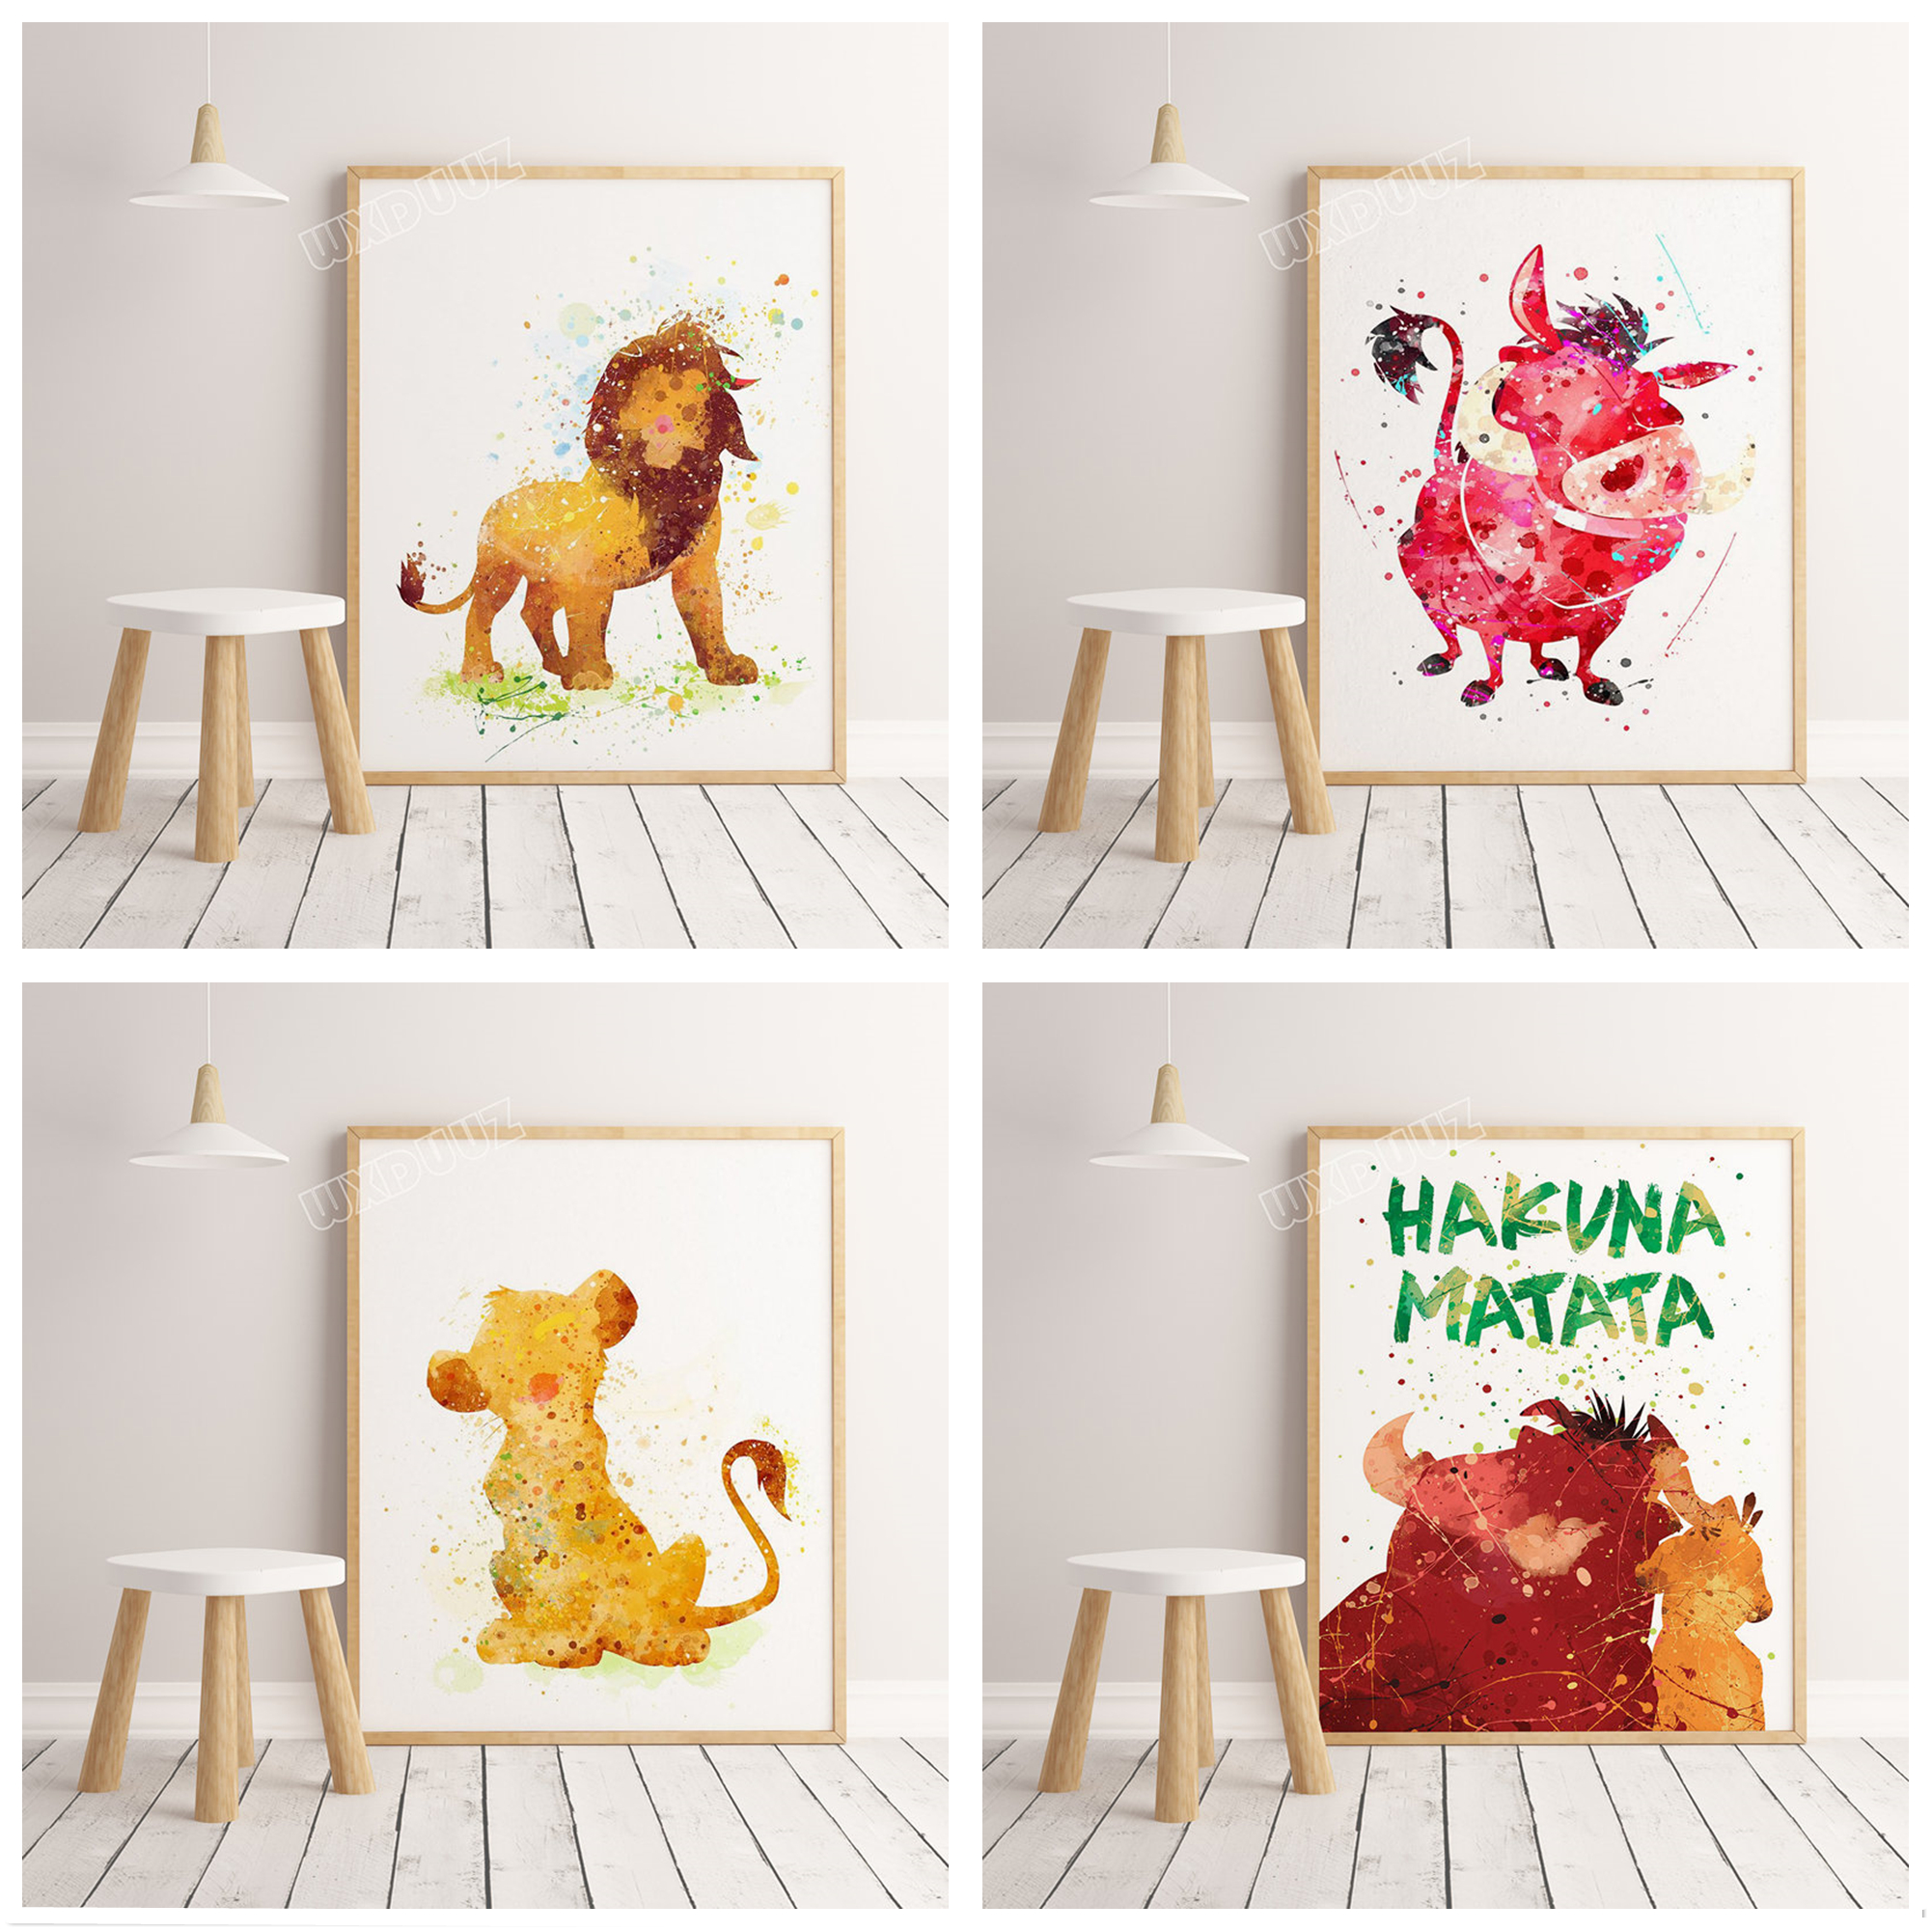 Lion King Poster Watercolor Cartoon Simba Painting Wall Art Picture Children's Room Home Decoration Canvas Painting A248